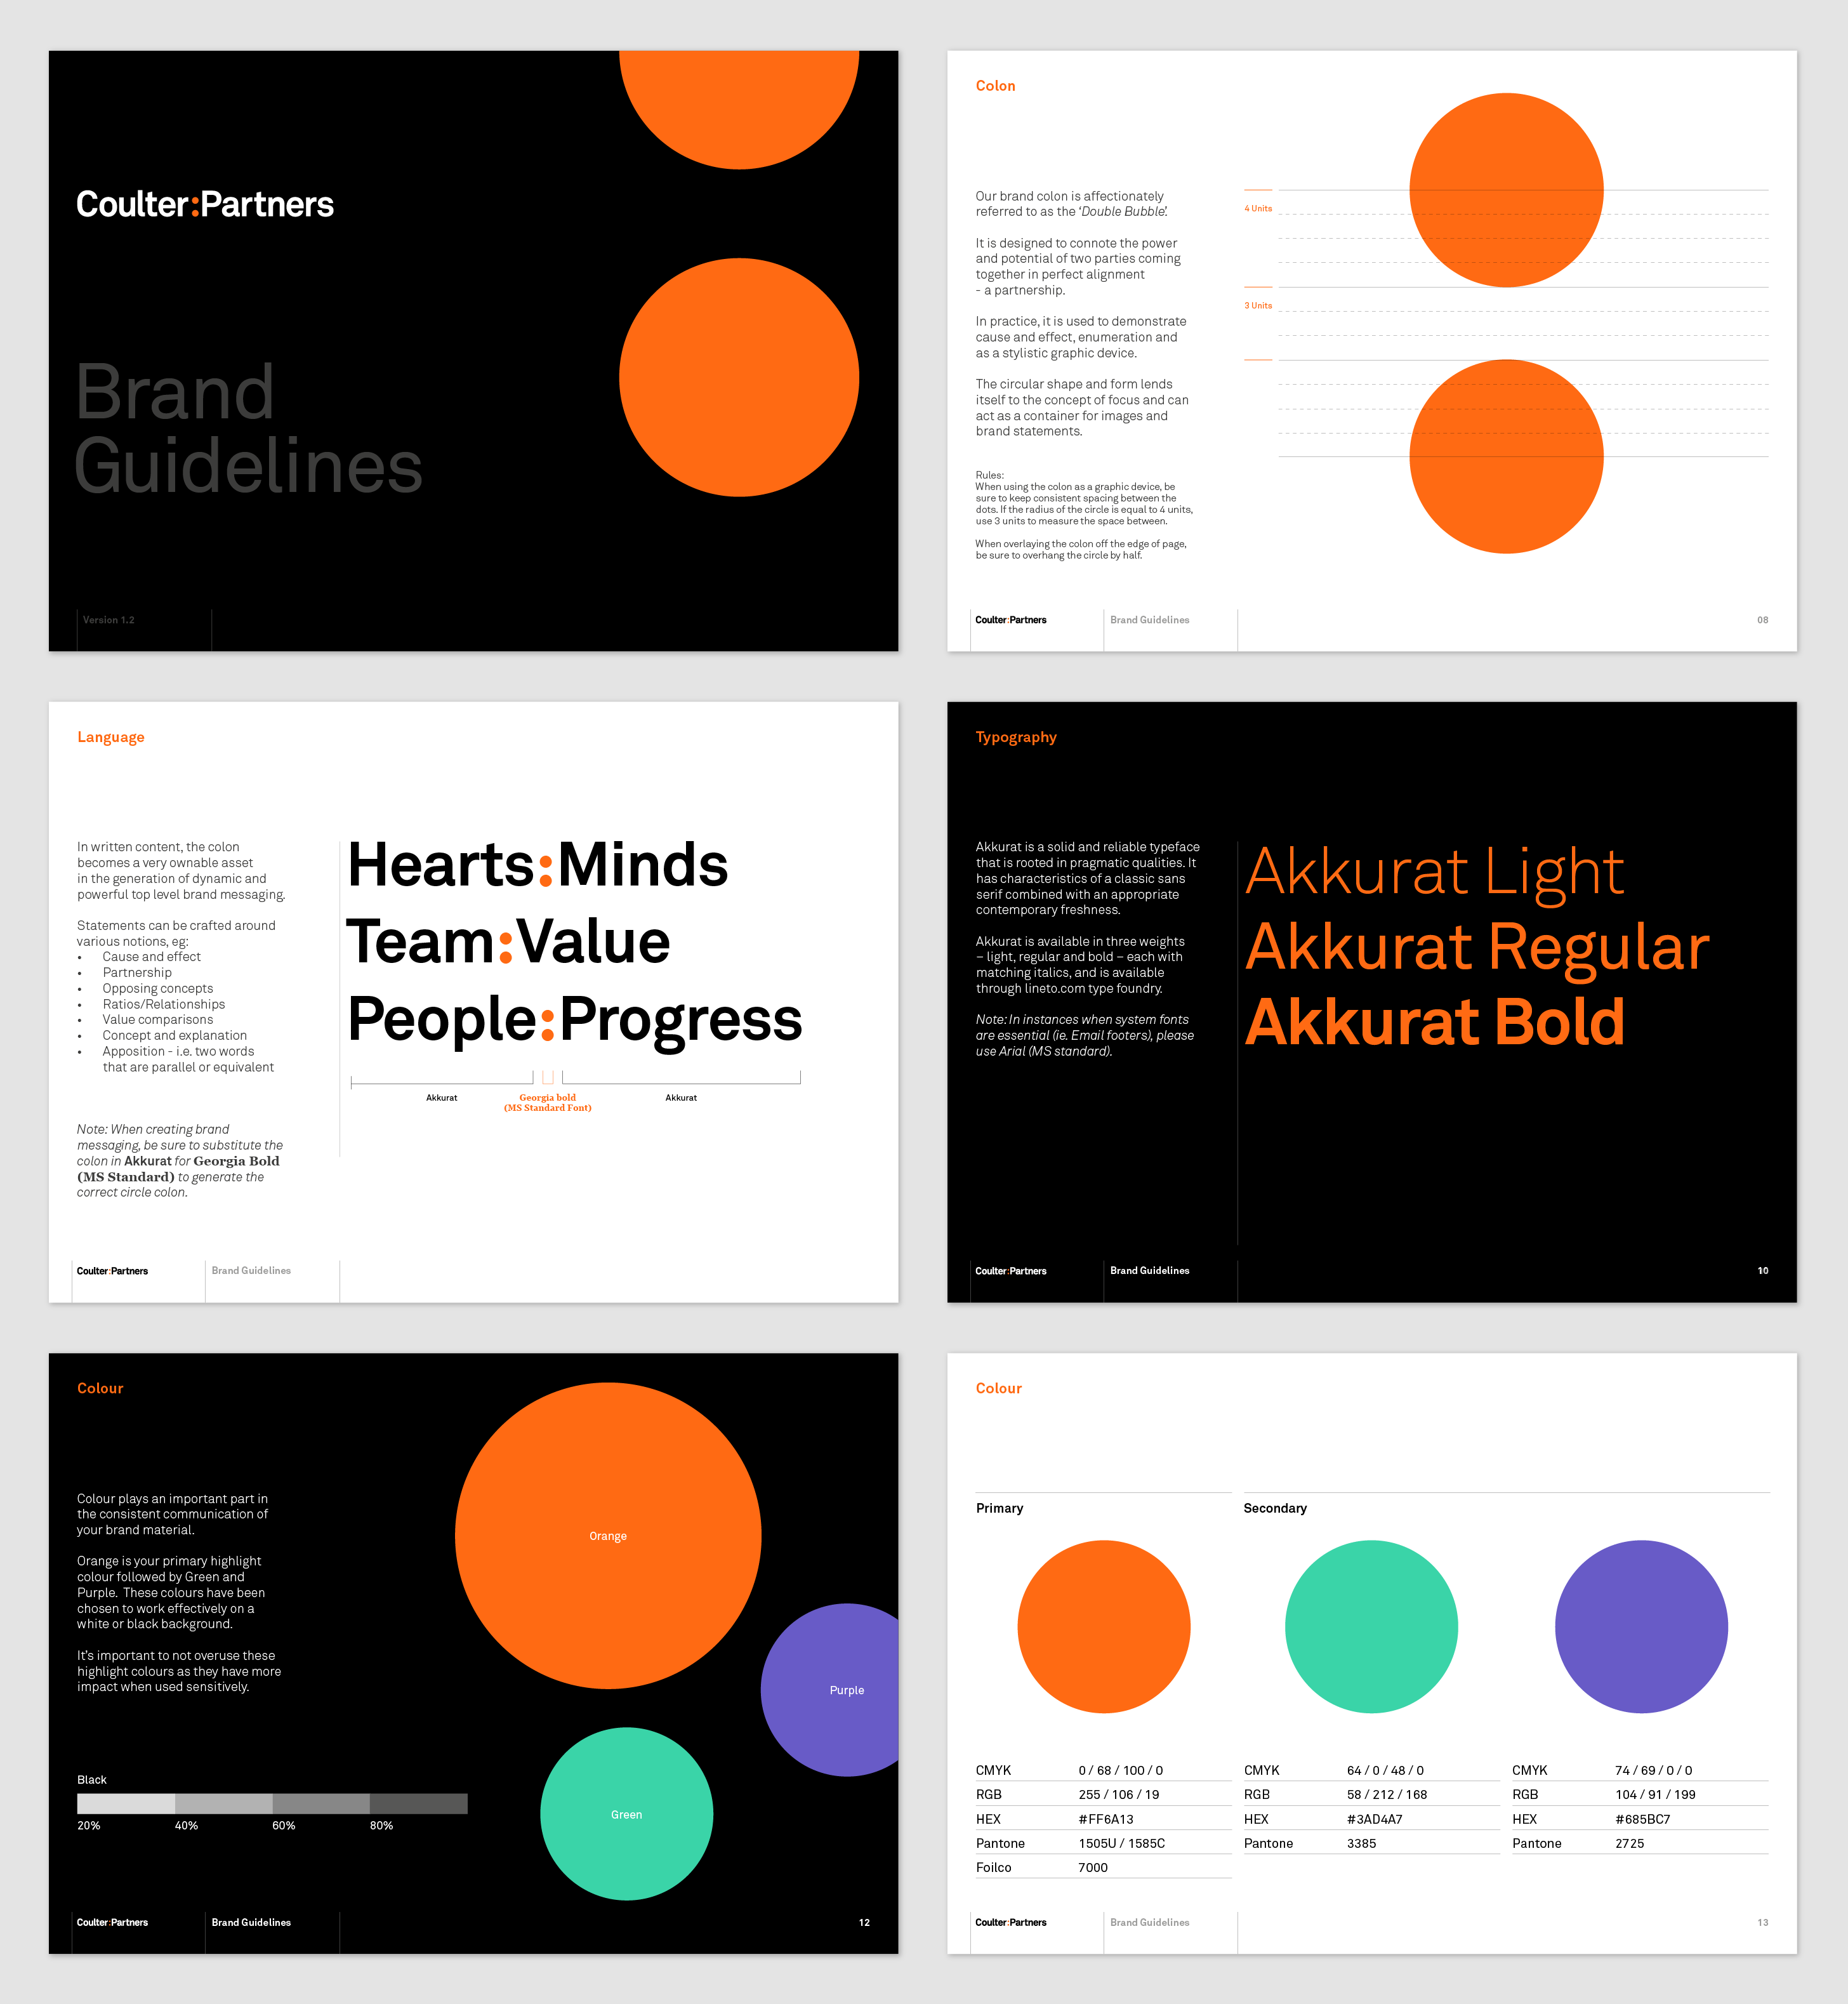 coulter-partners-brand-guidelines